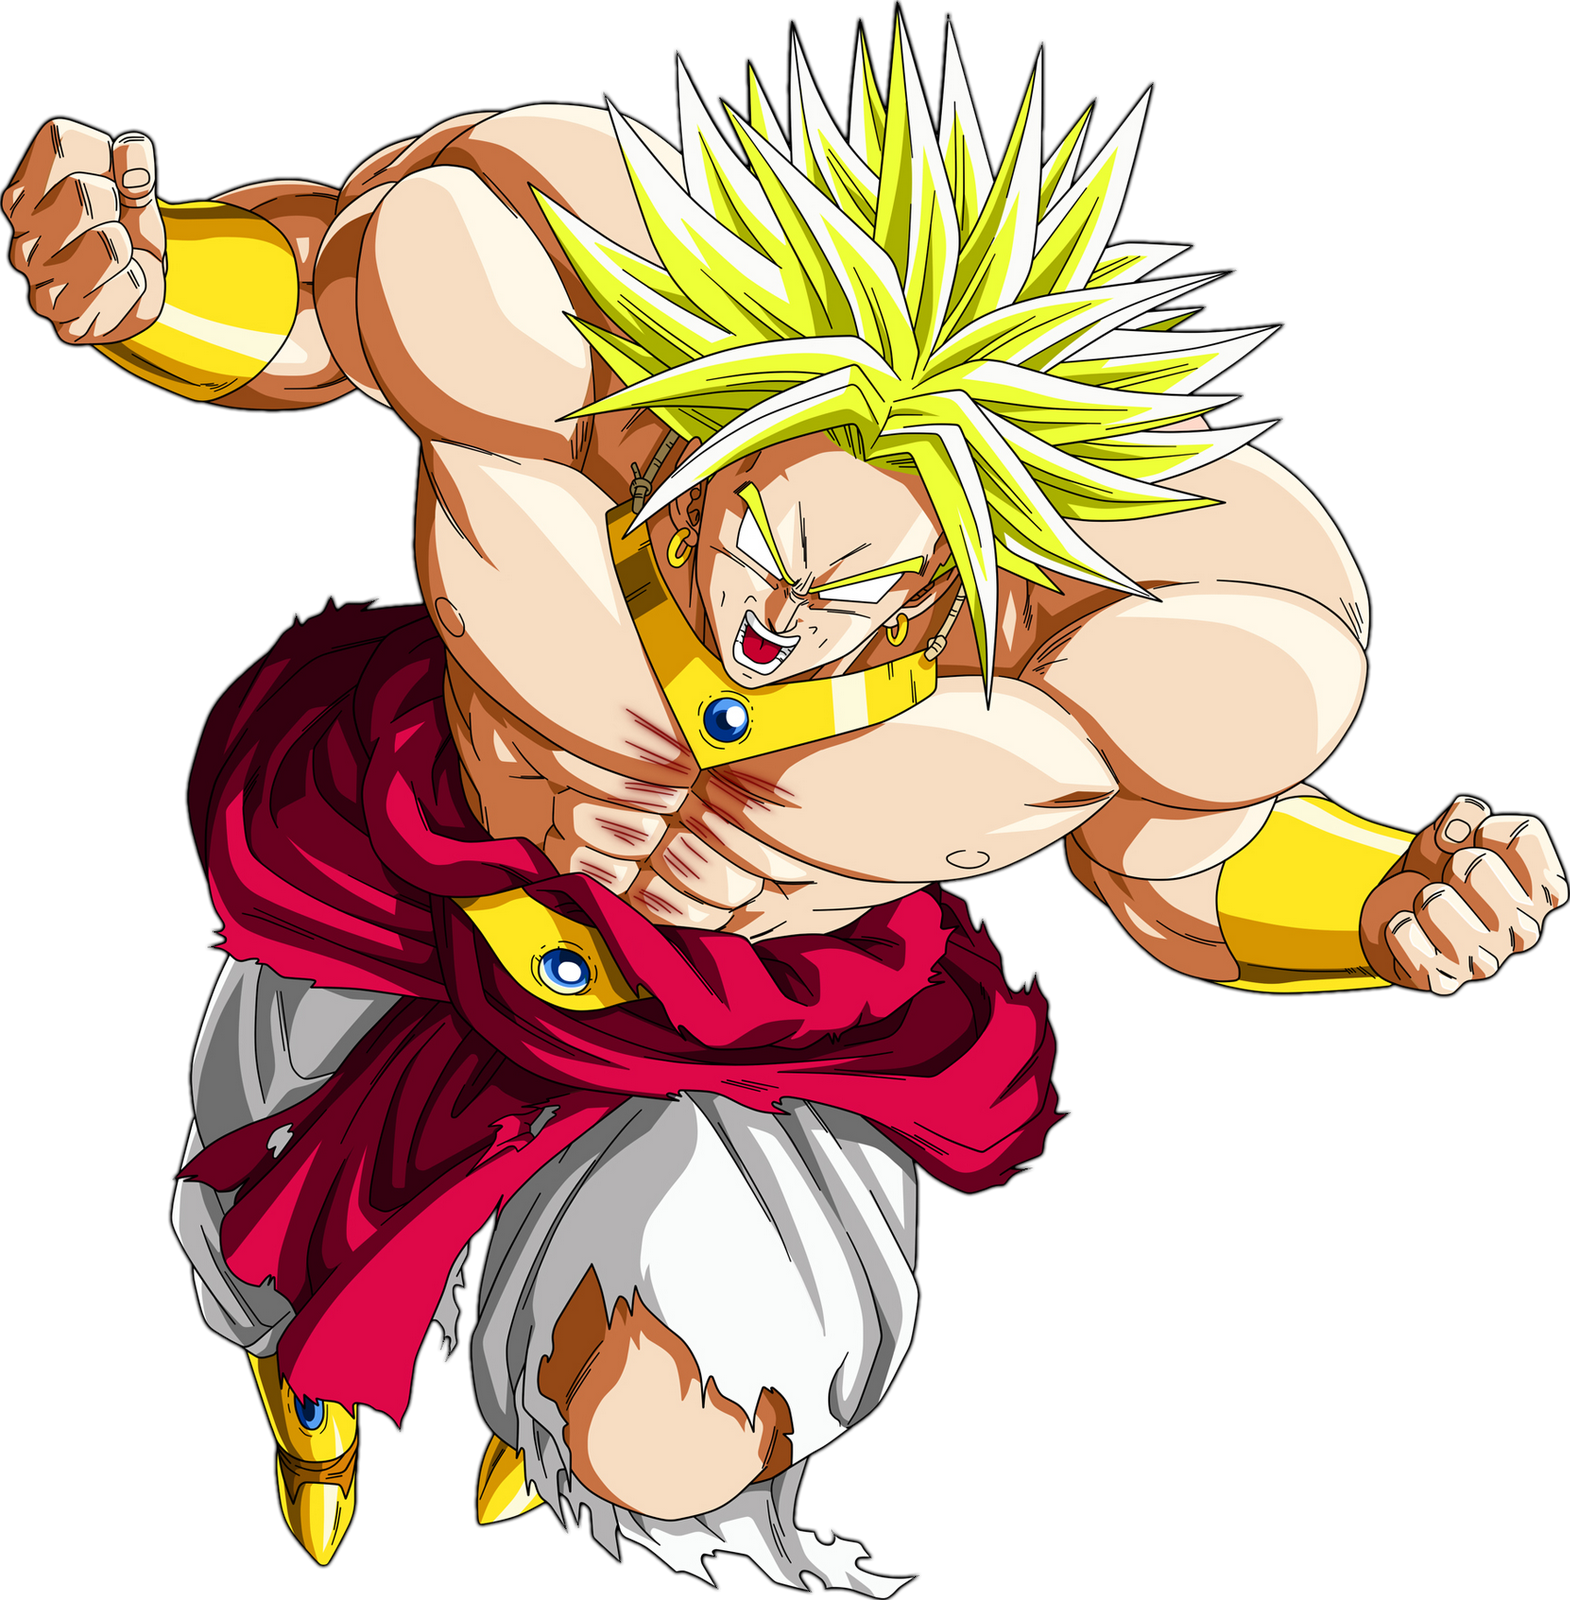 Broly dragon ball png. Image lss power levels